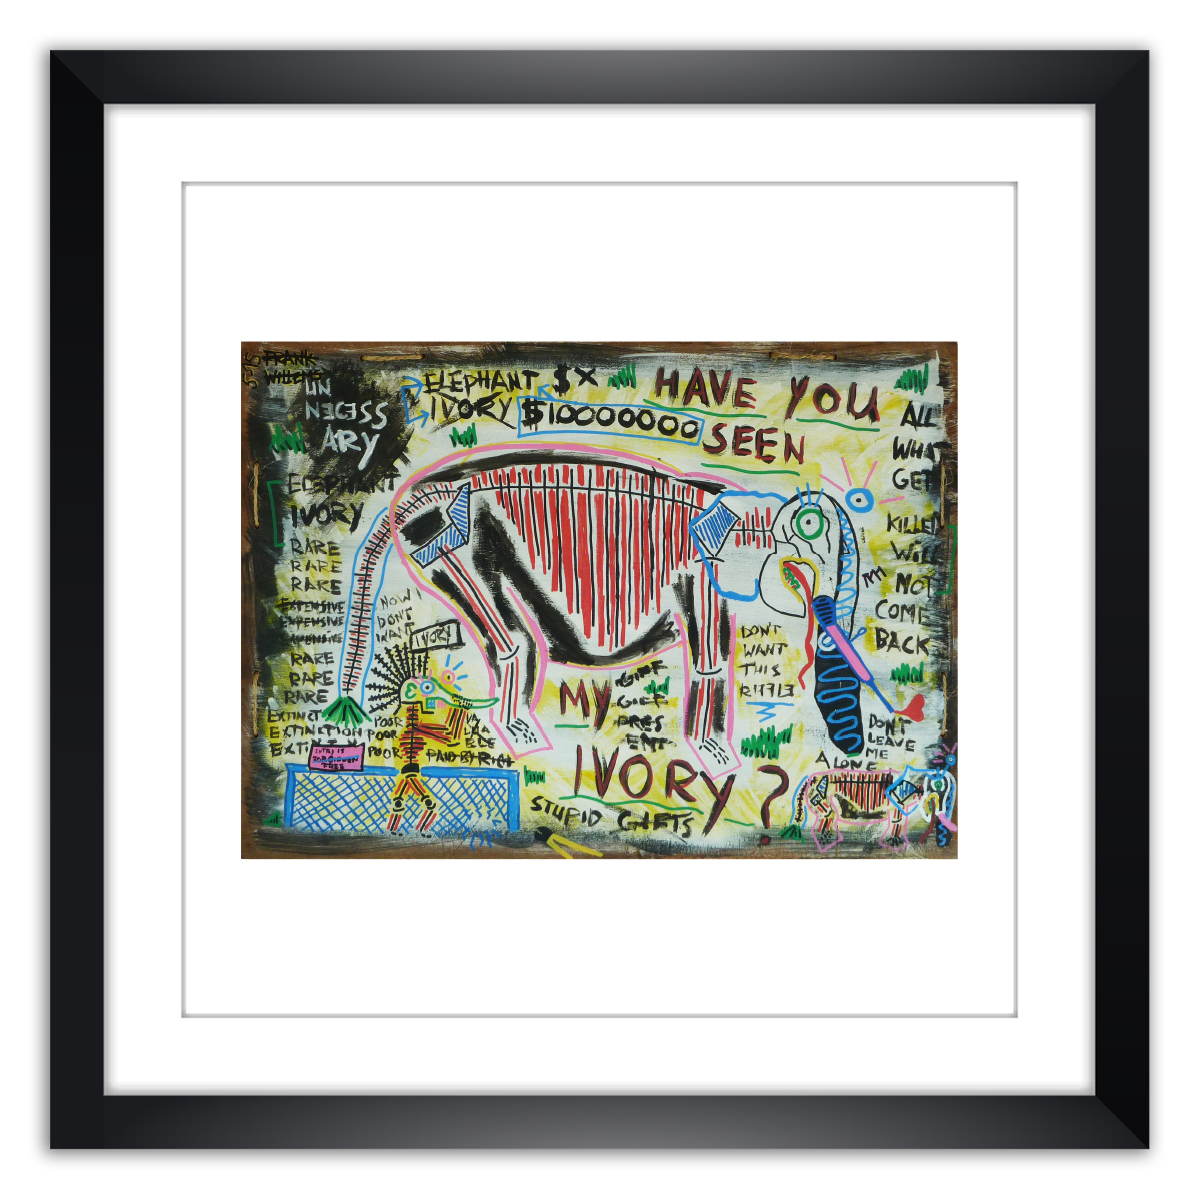 Limited prints - HAVE YOU SEEN MY IVORY framed - Frank Willems